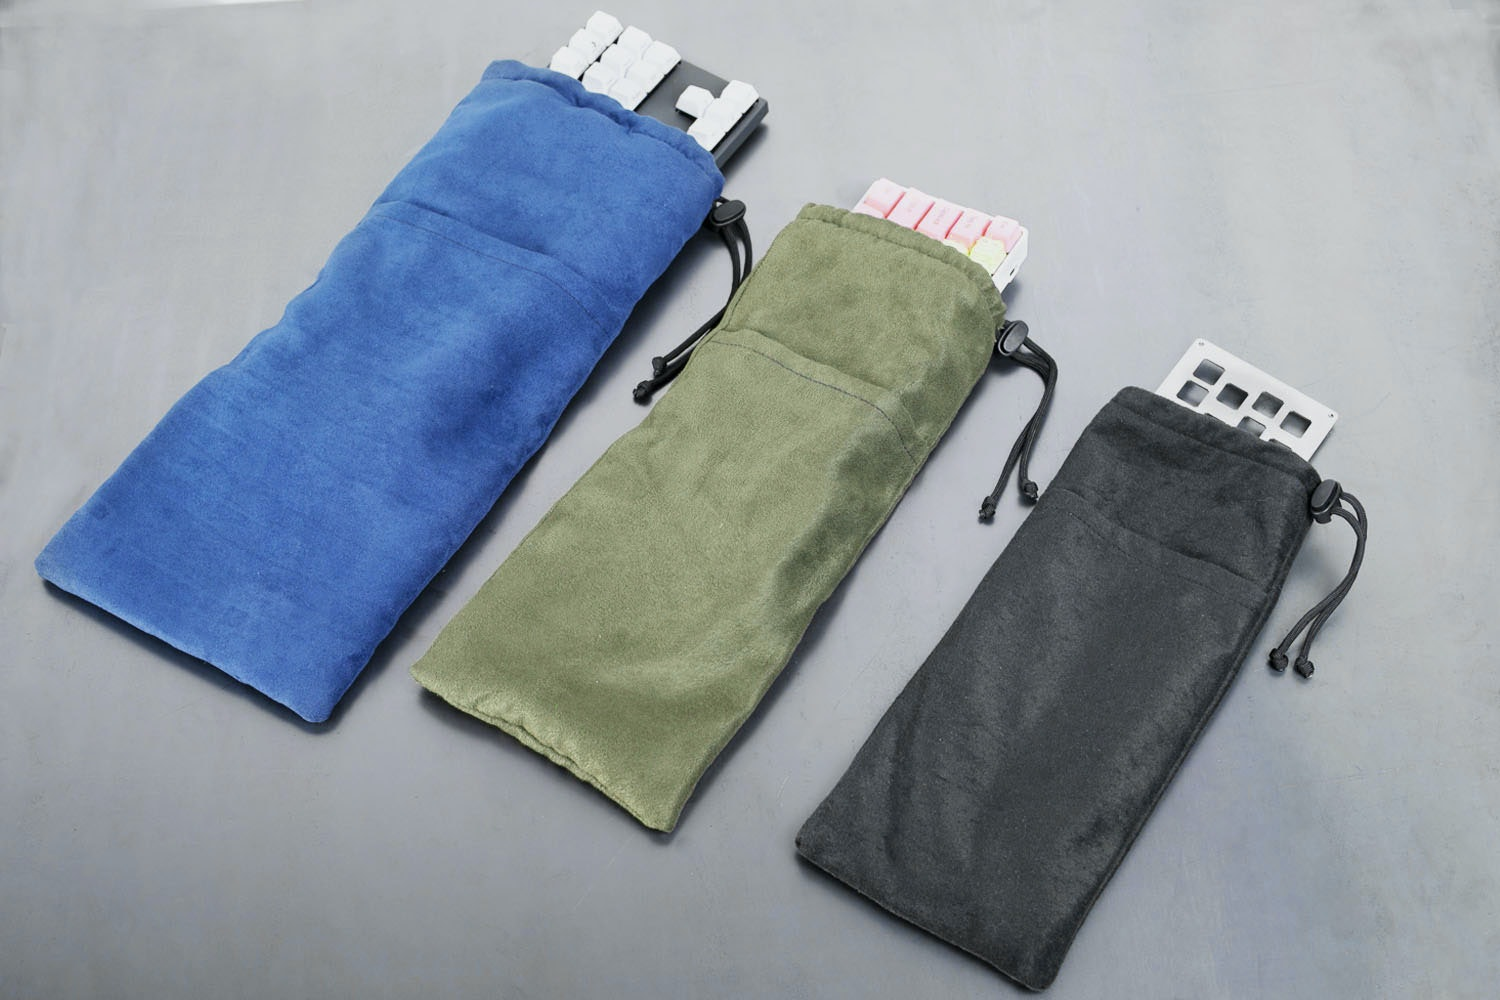 Soft Keyboard Carrying Case